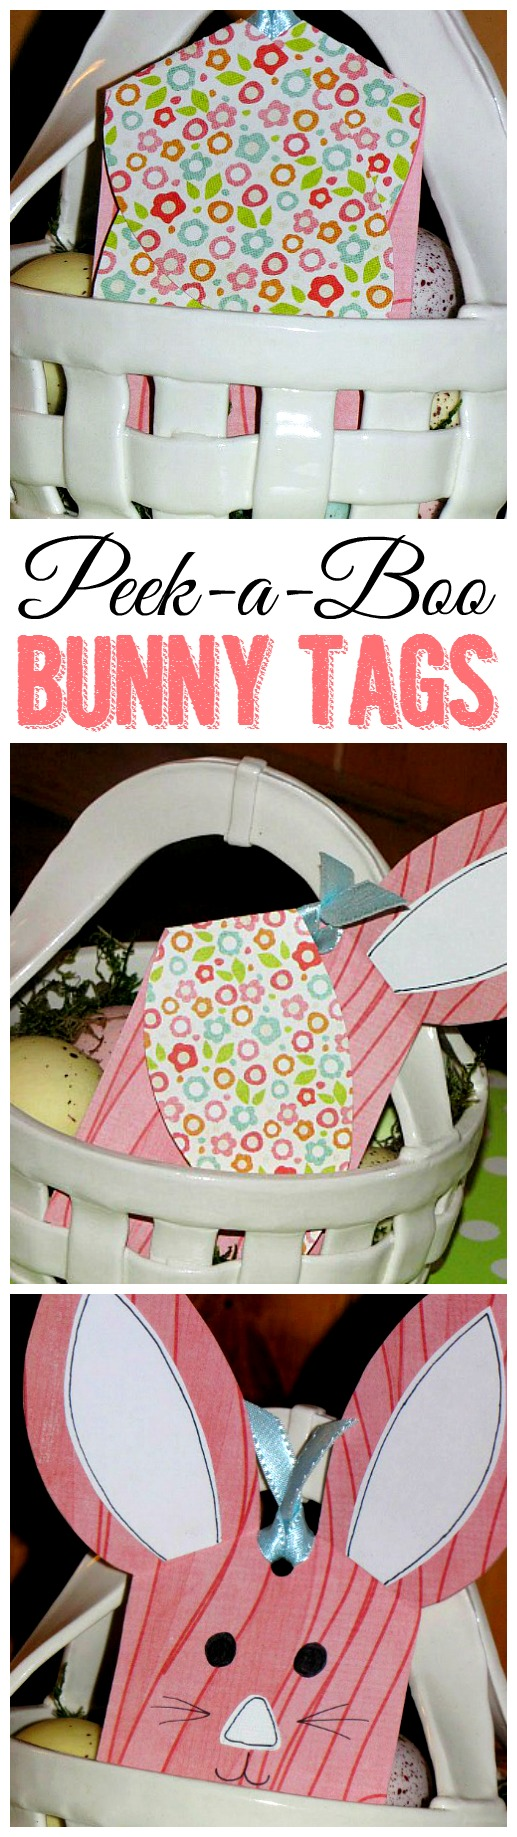 Cute peek-a-boo bunny tags with free template.